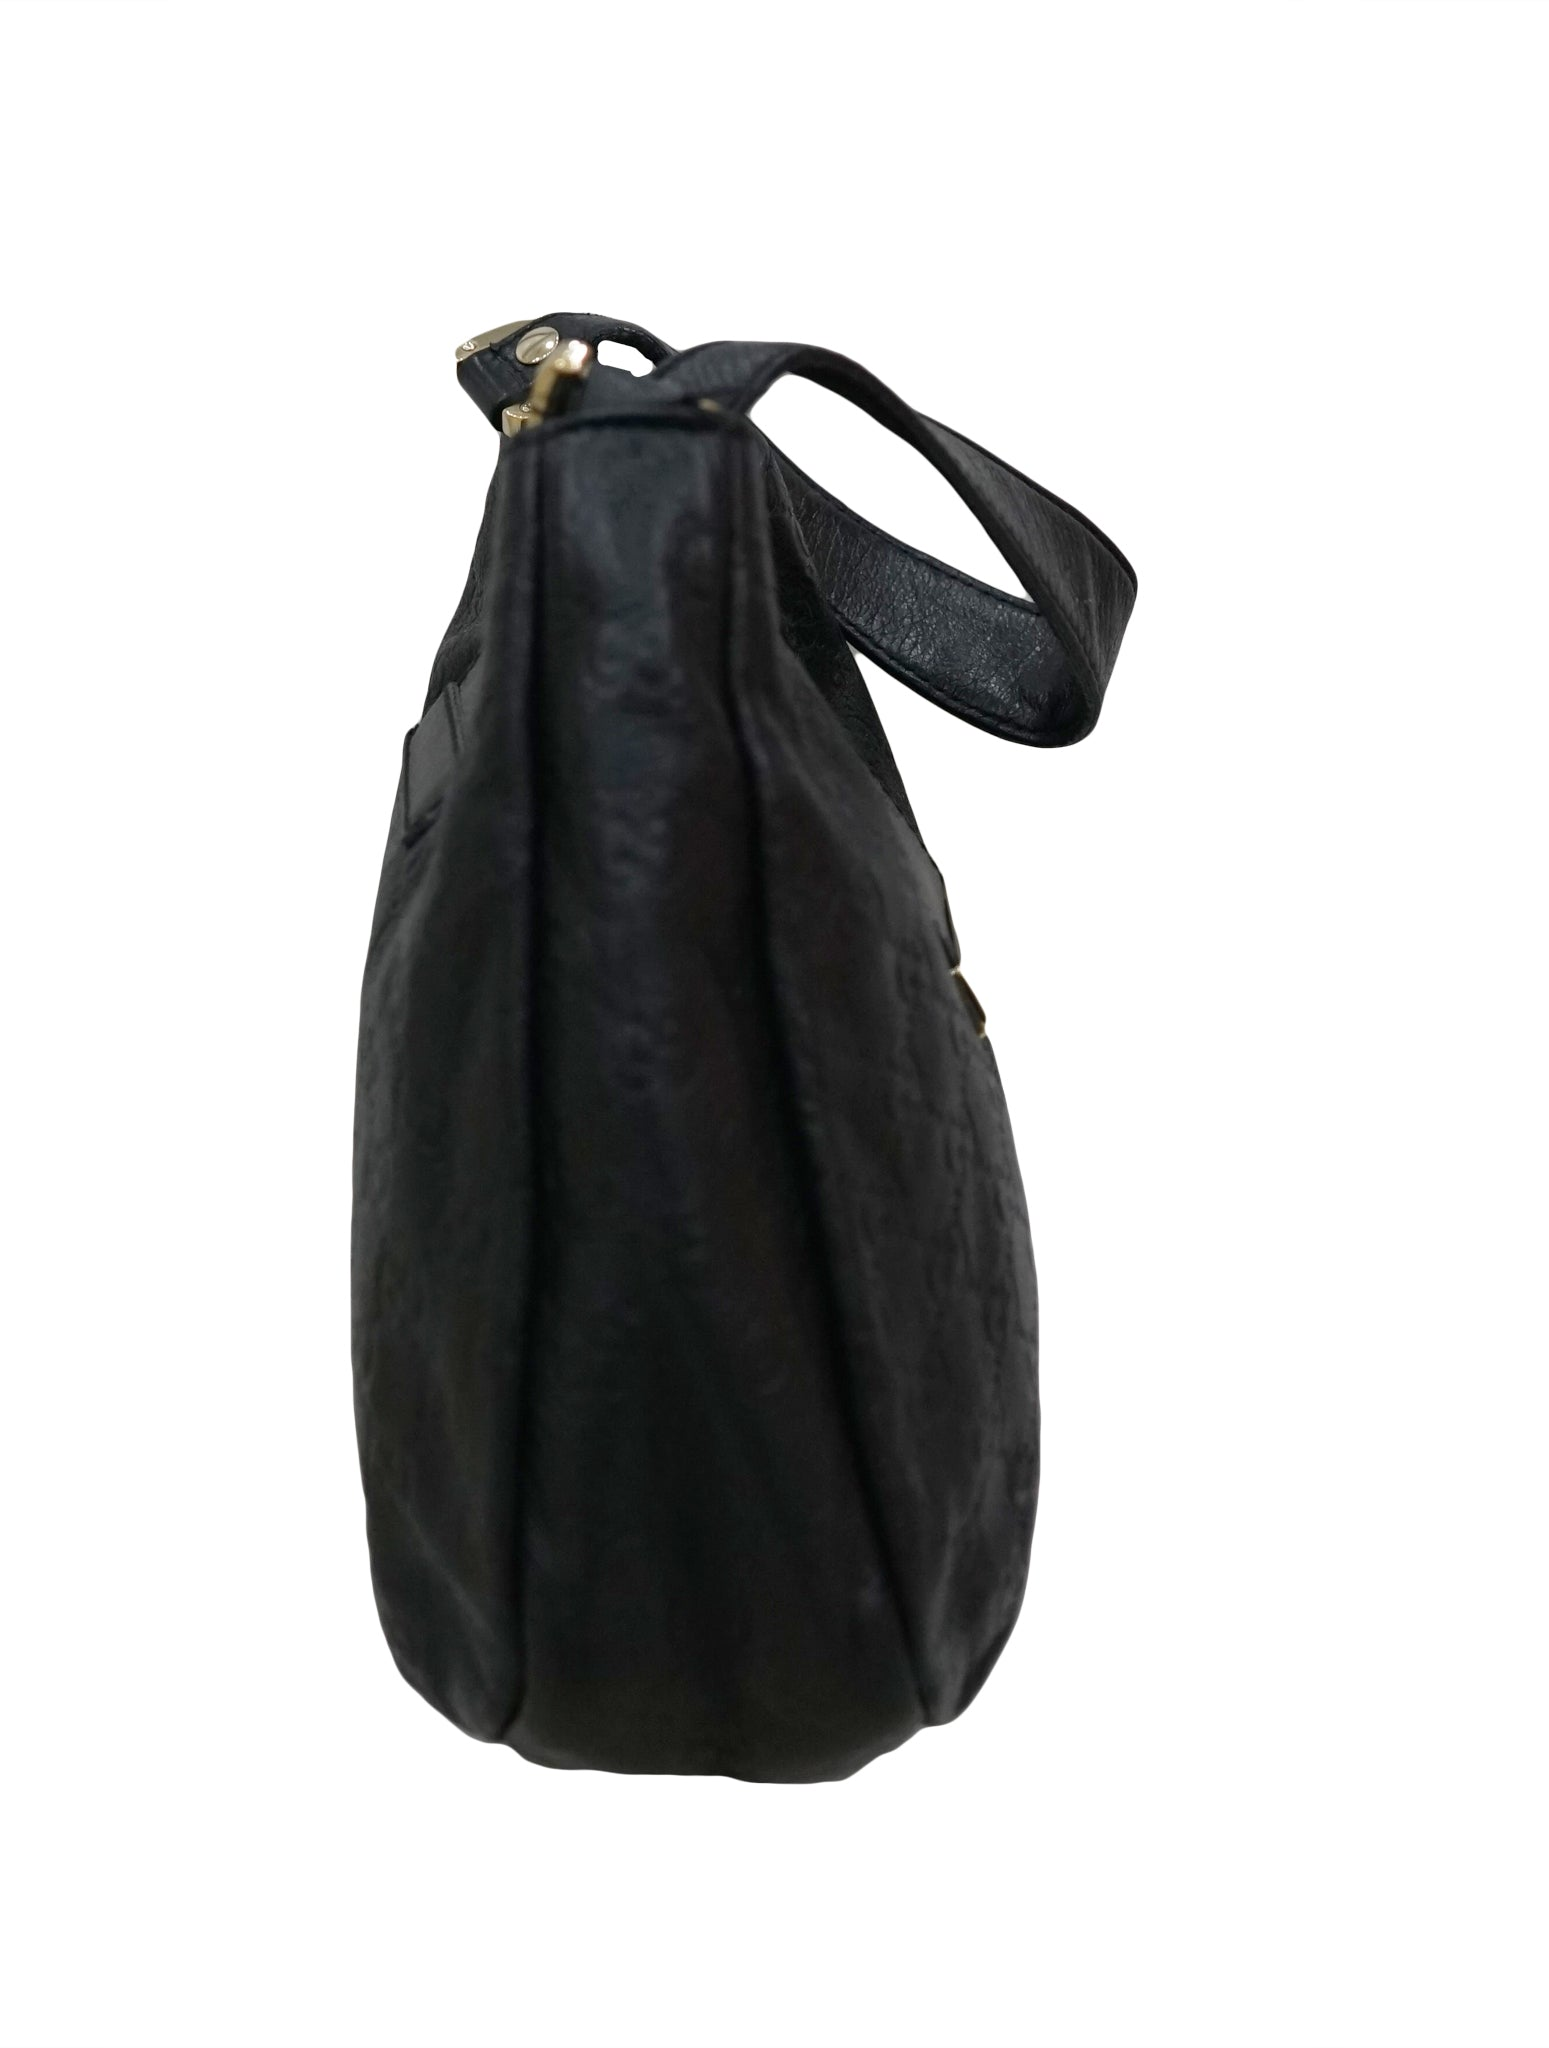 accdacab7b0c GUCCI GUCCISSIMA LEATHER VINTAGE WEB HOBO – Kidsstyleforless